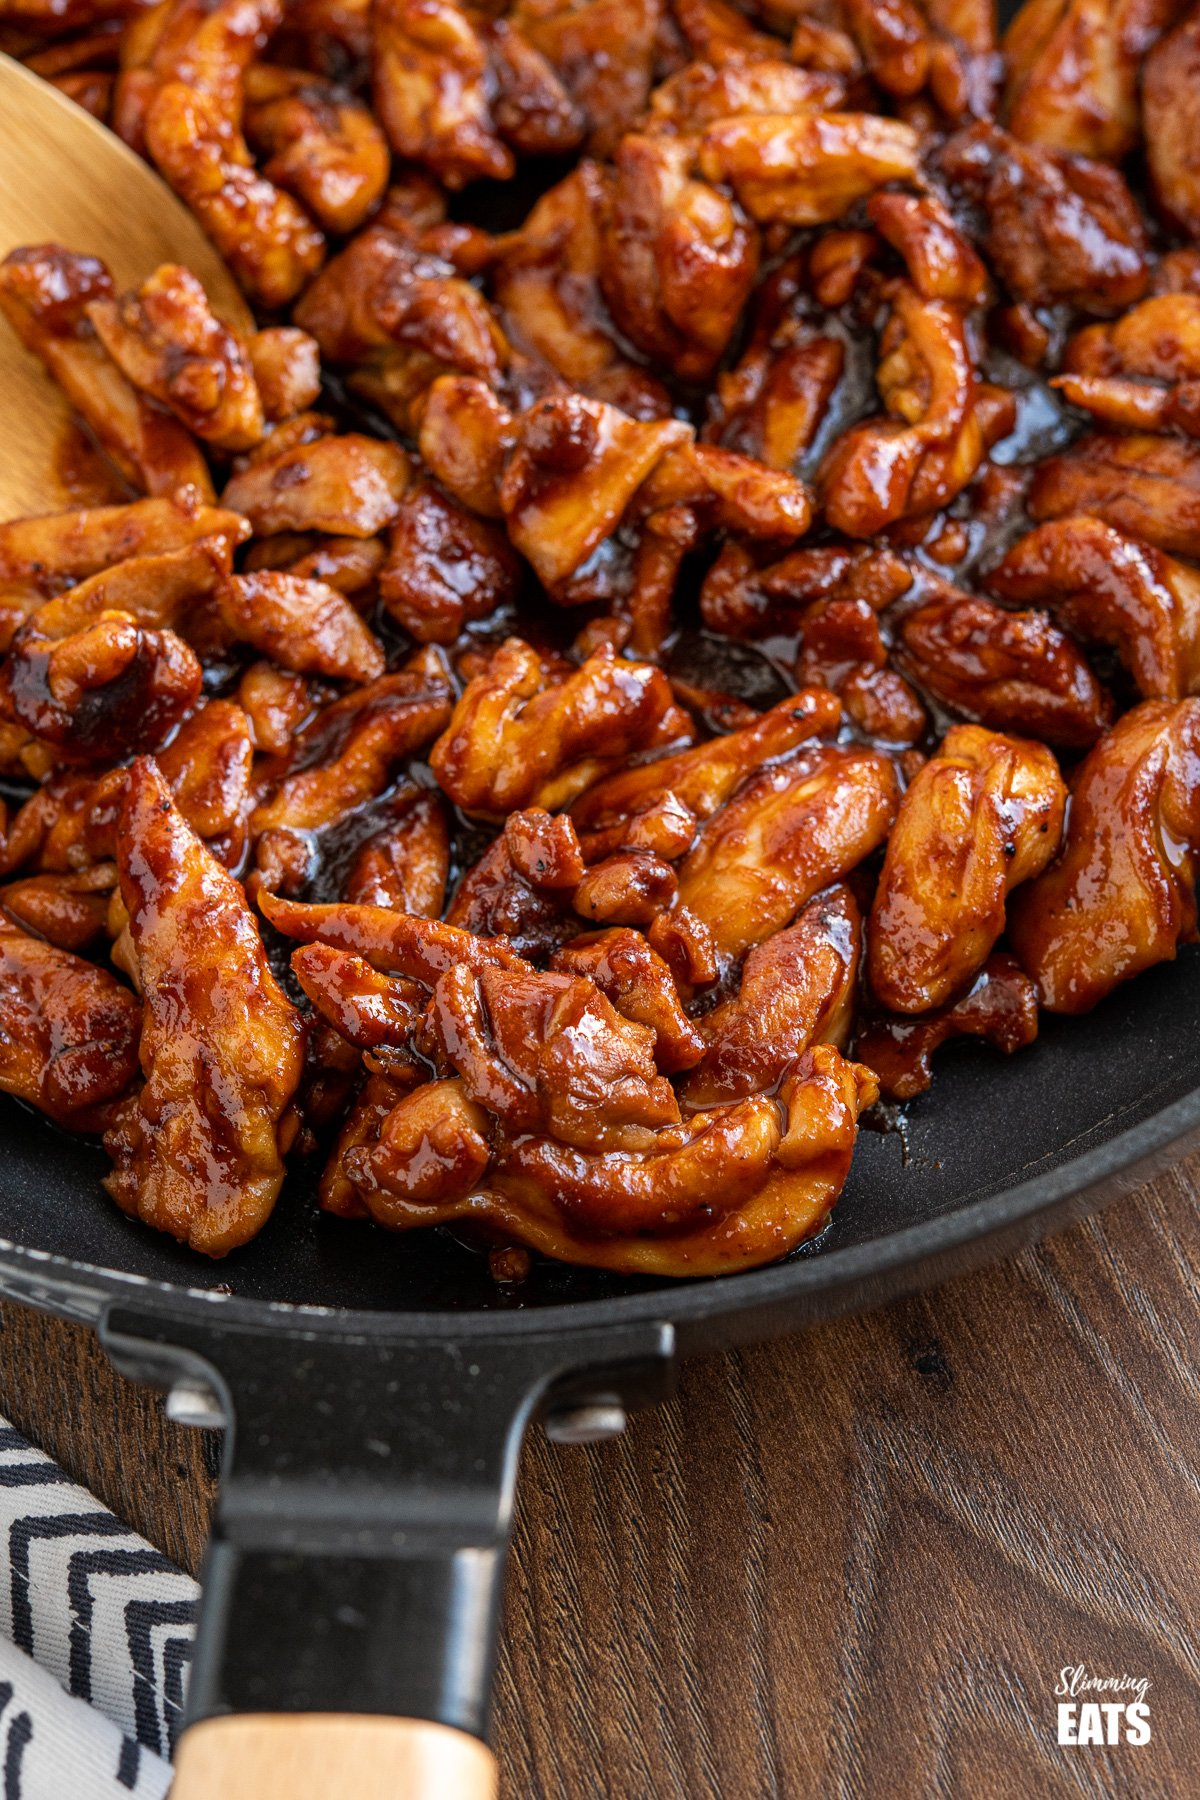 close up of sweet and sticky chicken in frying pan with wooden handle